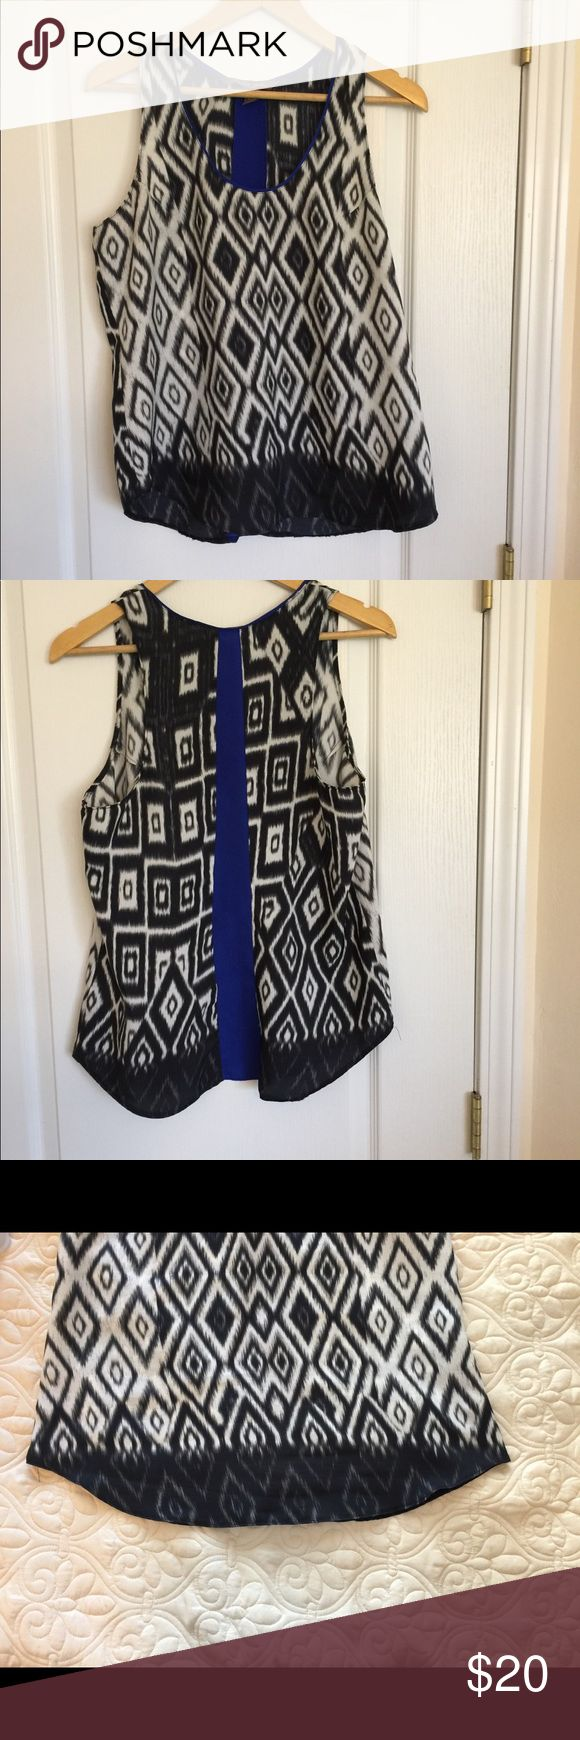 Black, White, and Blue Charlie Jade Ikat Tank Top This is a cute black and white ikat tank top from Charlie Jade. EUC. It has blue trim around the neck and a blue stripe straight down the back. It's looks great layered over another tank with jeans.   Bust - 19.5 in Length - about 26 in Smoke free home Pet friendly (1 dog) home Charlie Jade Tops Tank Tops